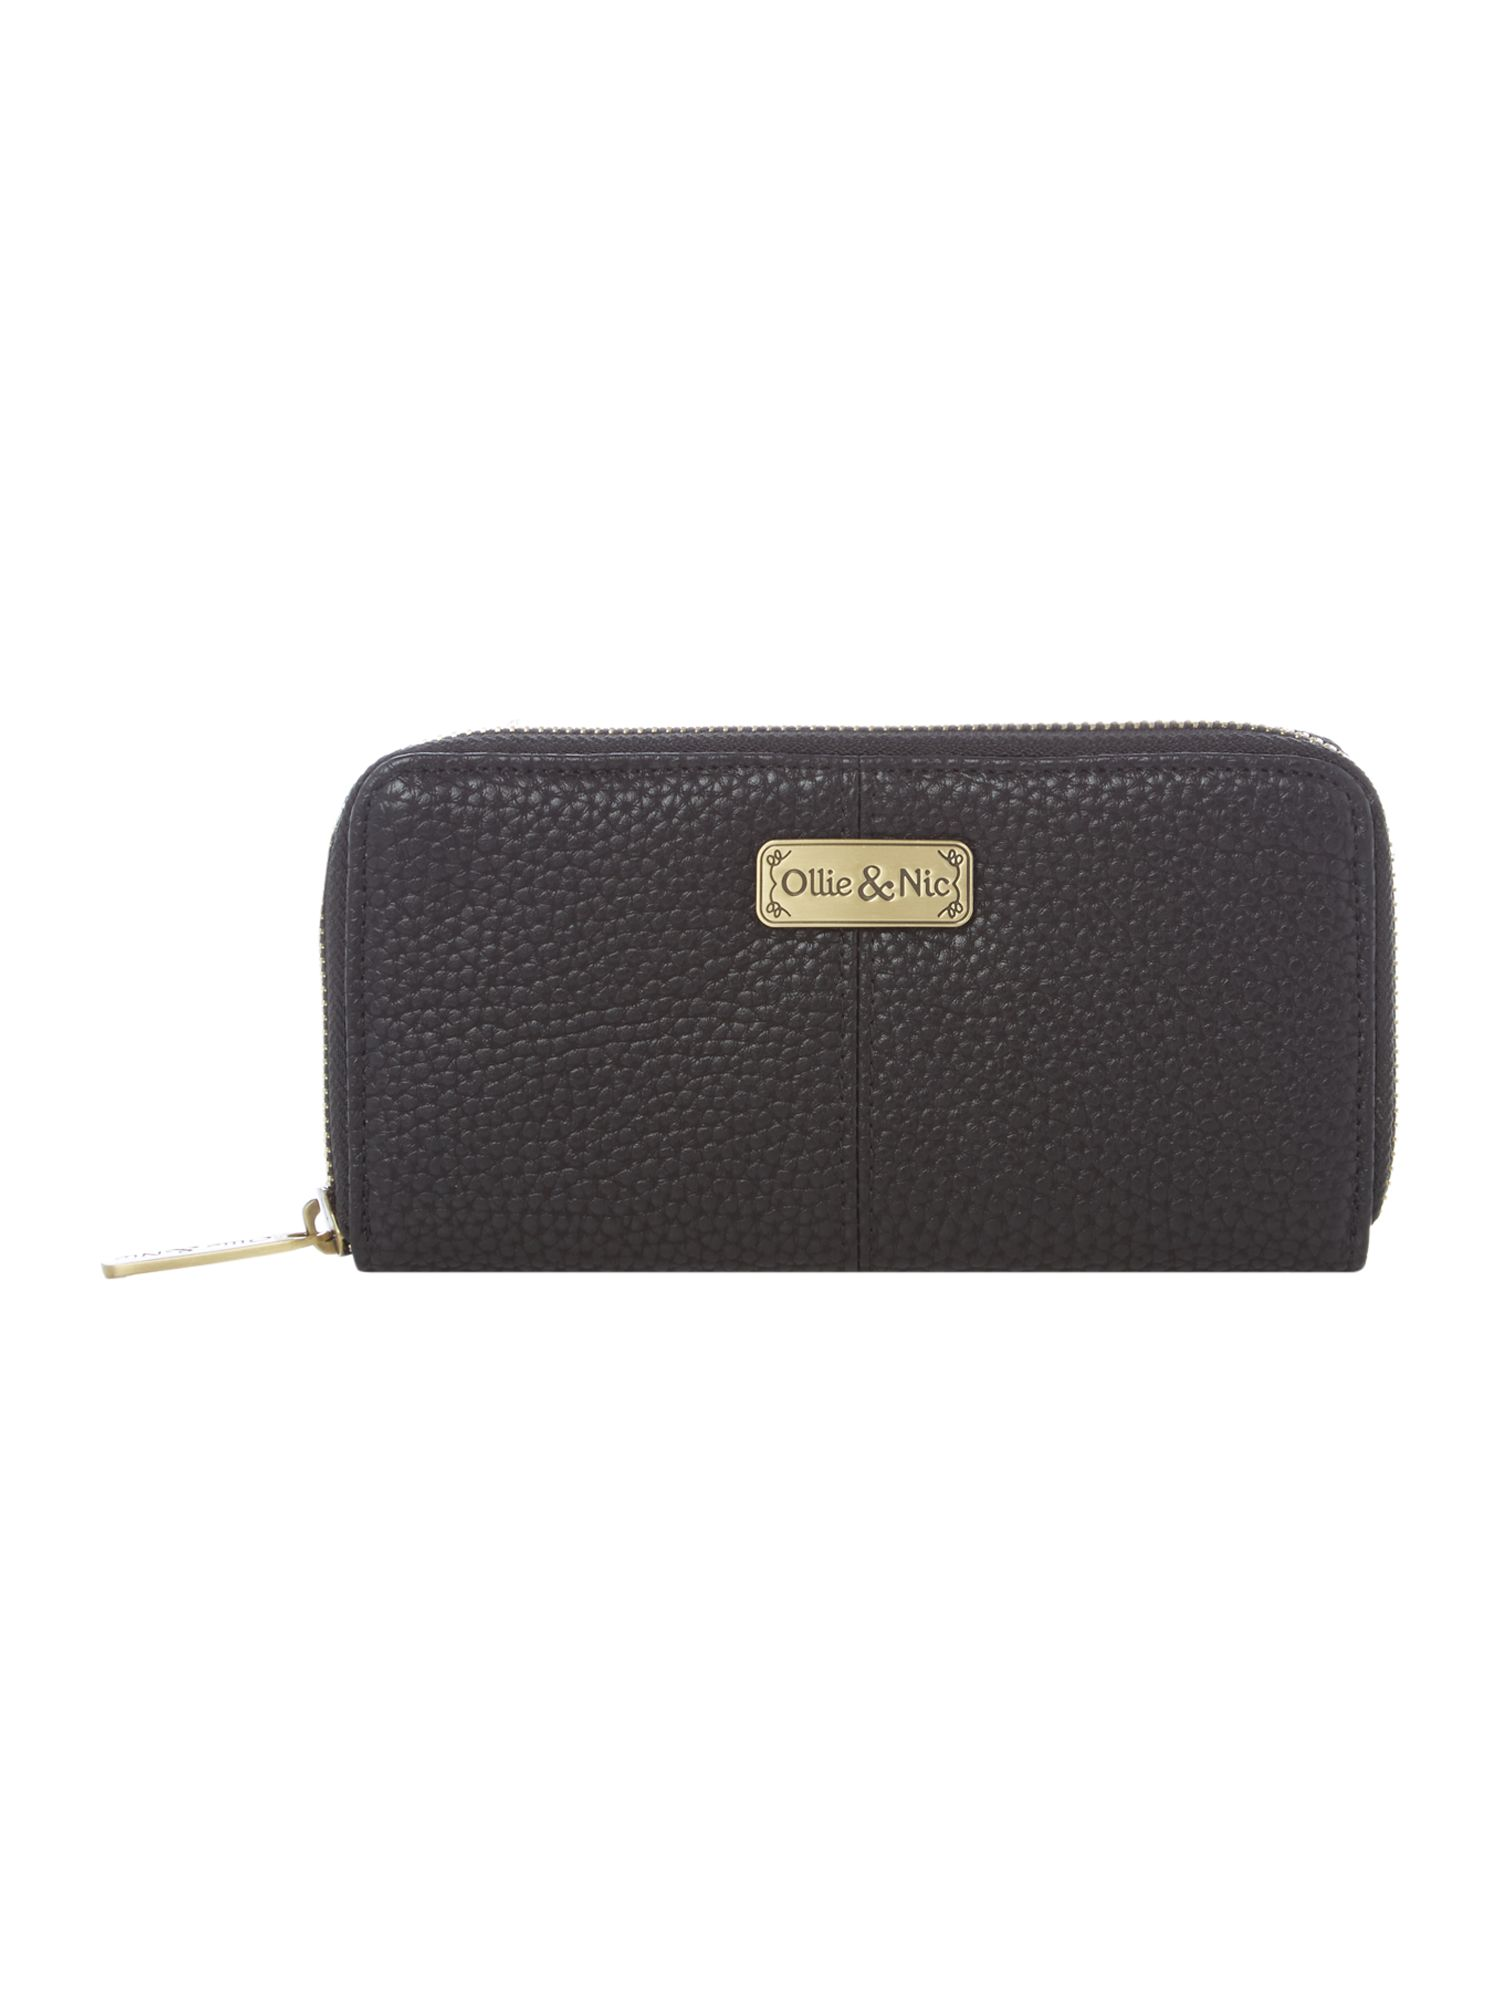 Ollie & Nic Claude textured zip around purse, Black